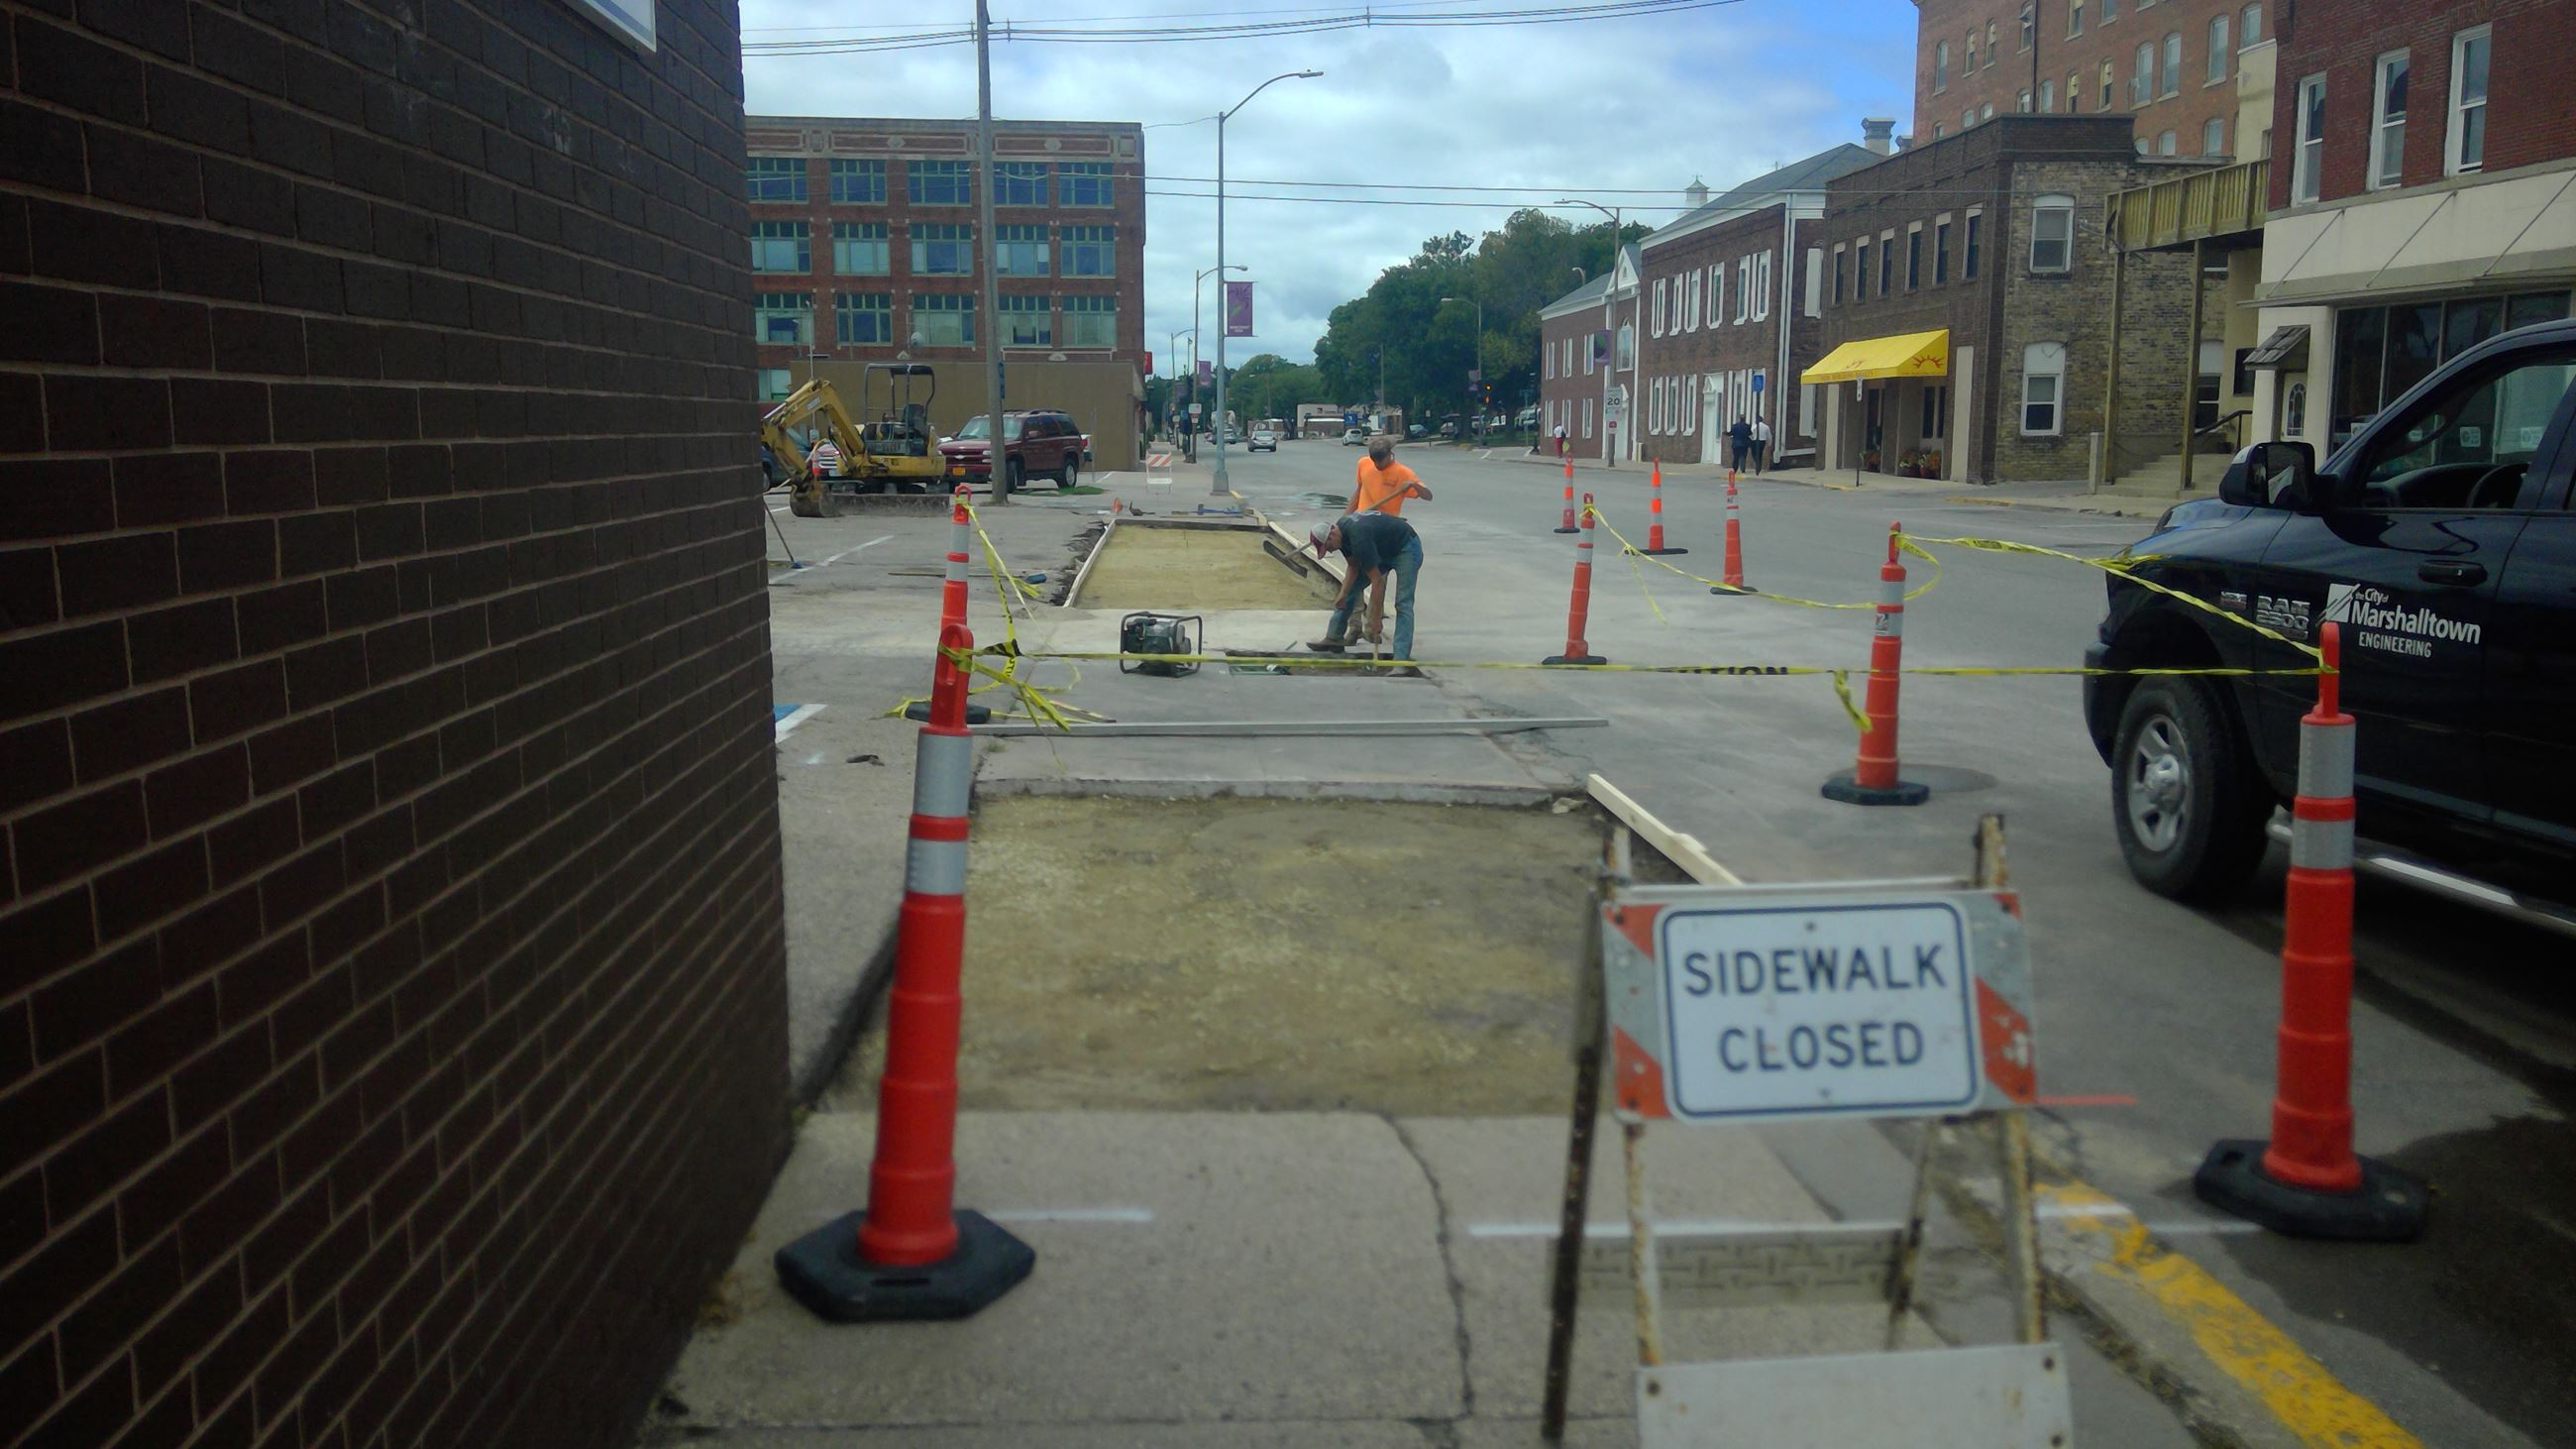 Construction workers working to replace pieces of sidewalk.